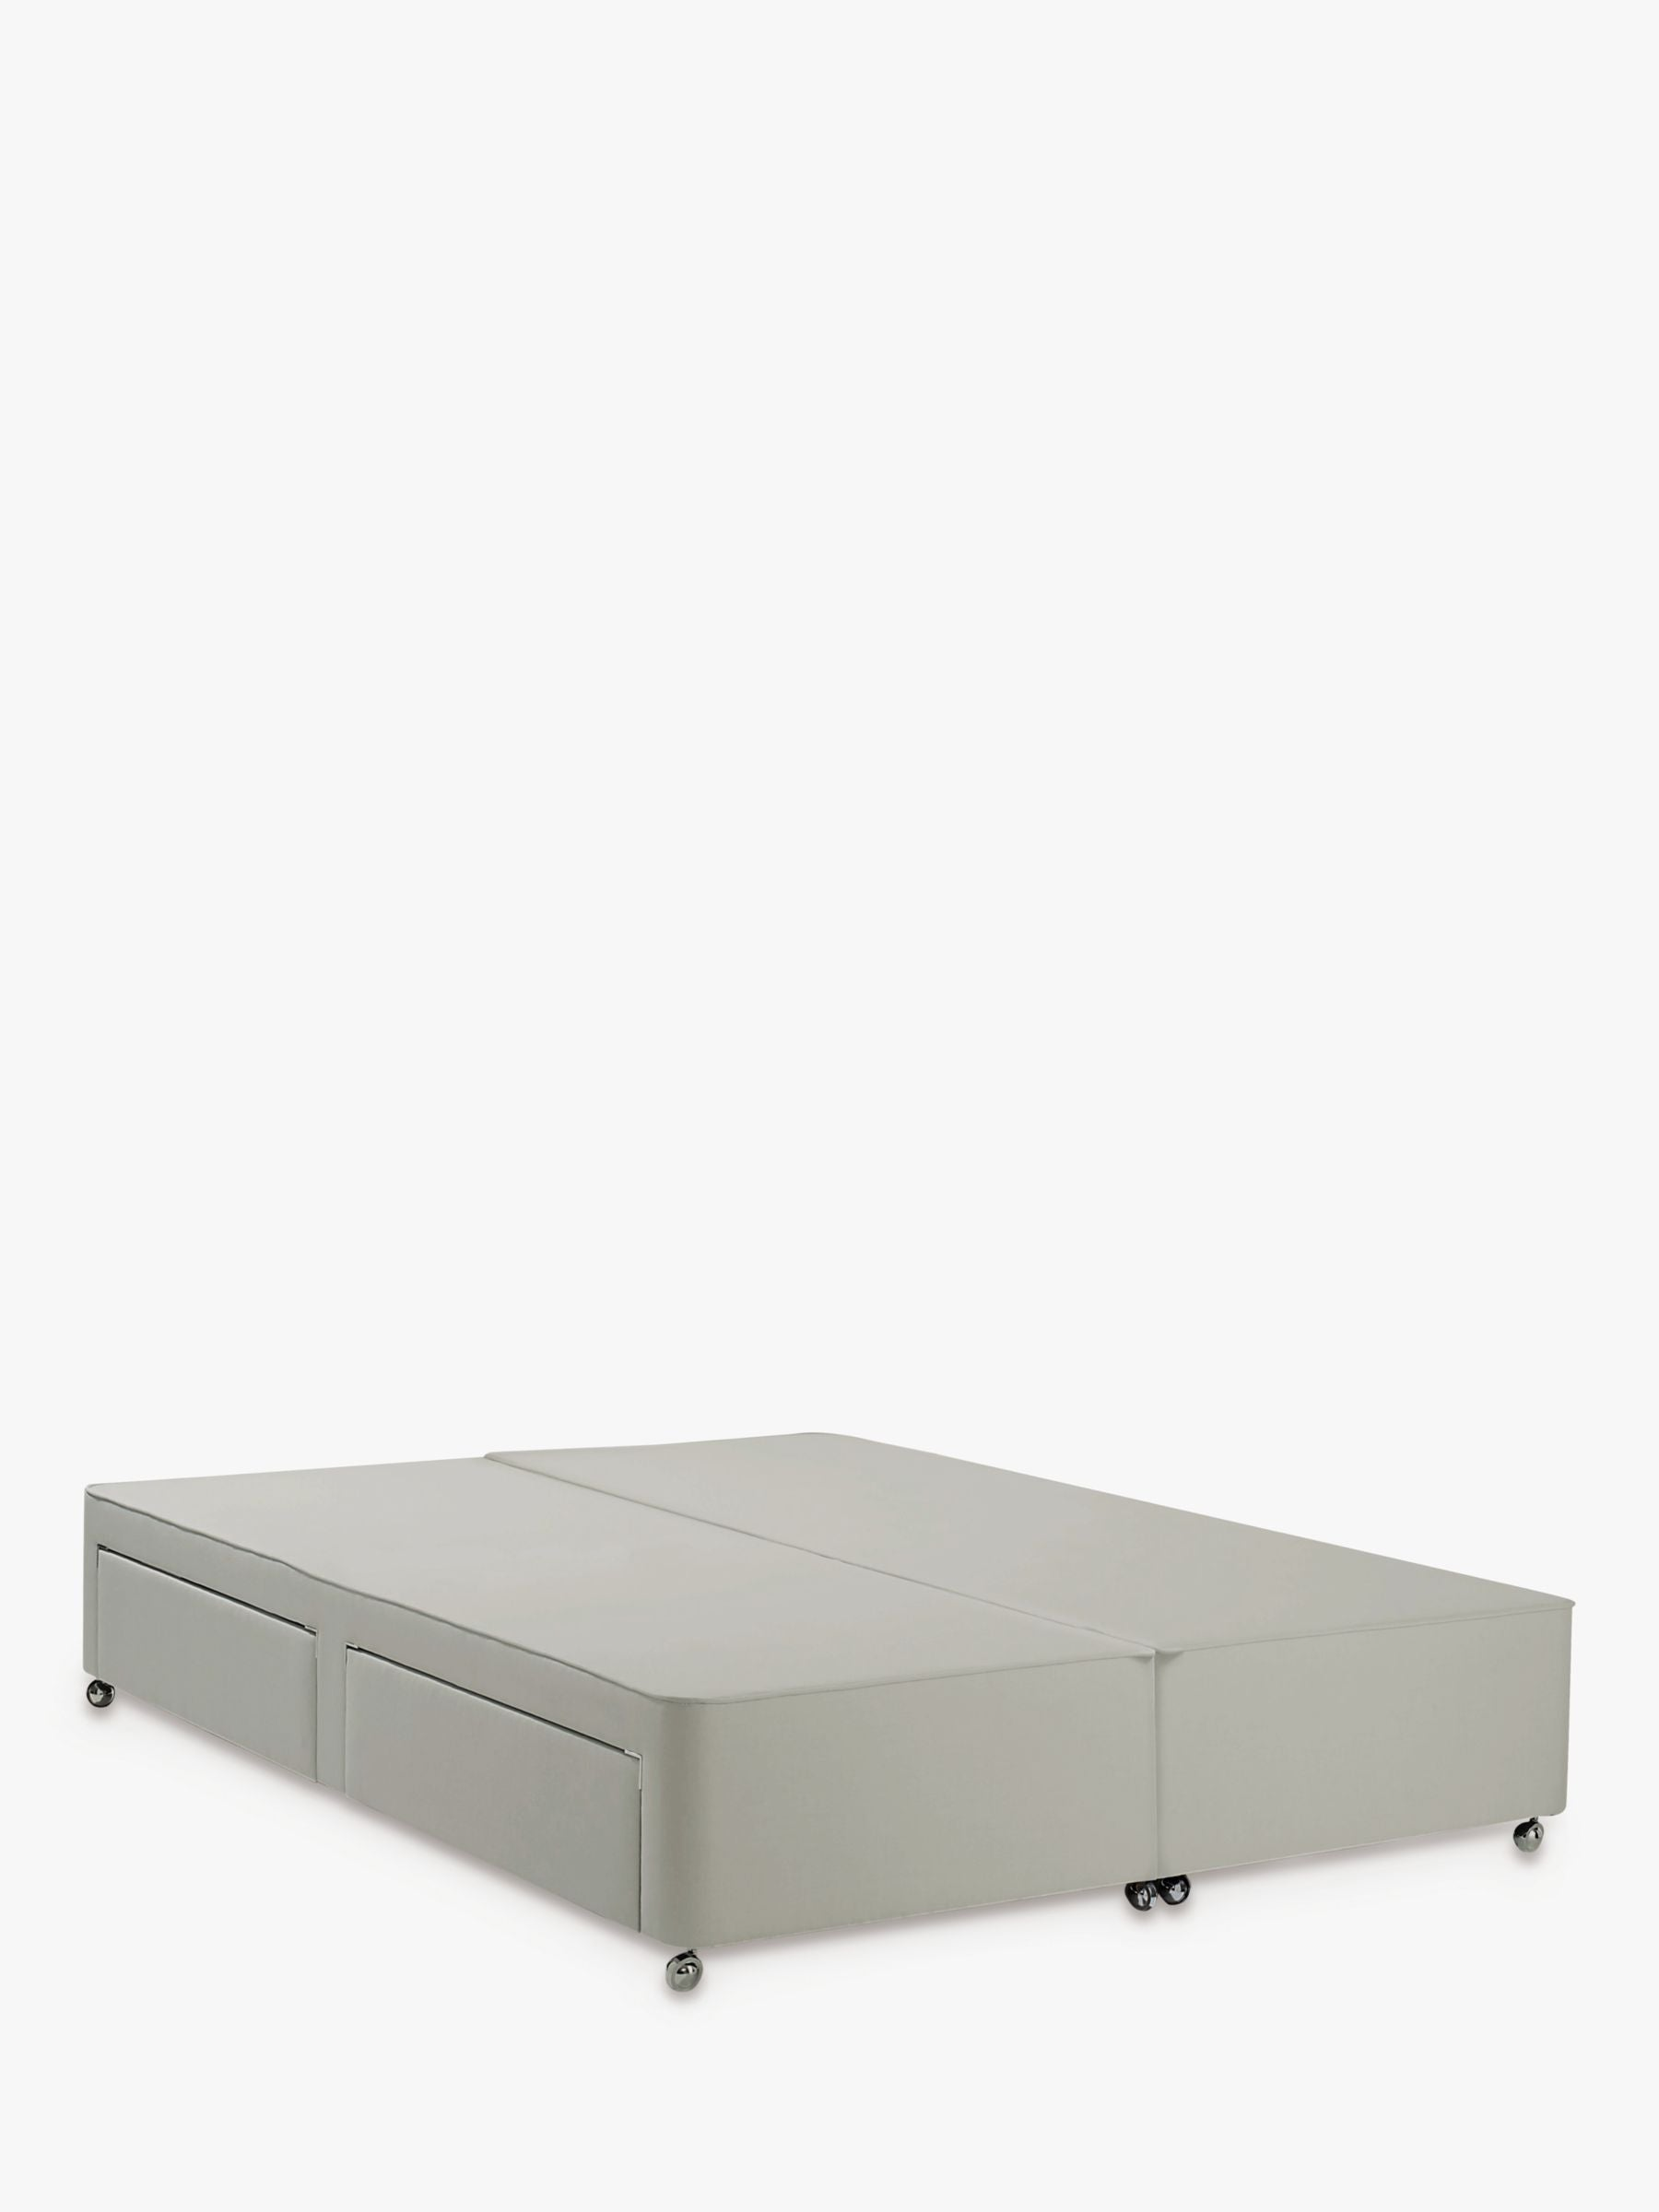 John Lewis & Partners Non Sprung 4 Drawer Storage Upholstered Divan Base, Super King Size, Canvas Stone Grey, FSC-Certified (Pine)